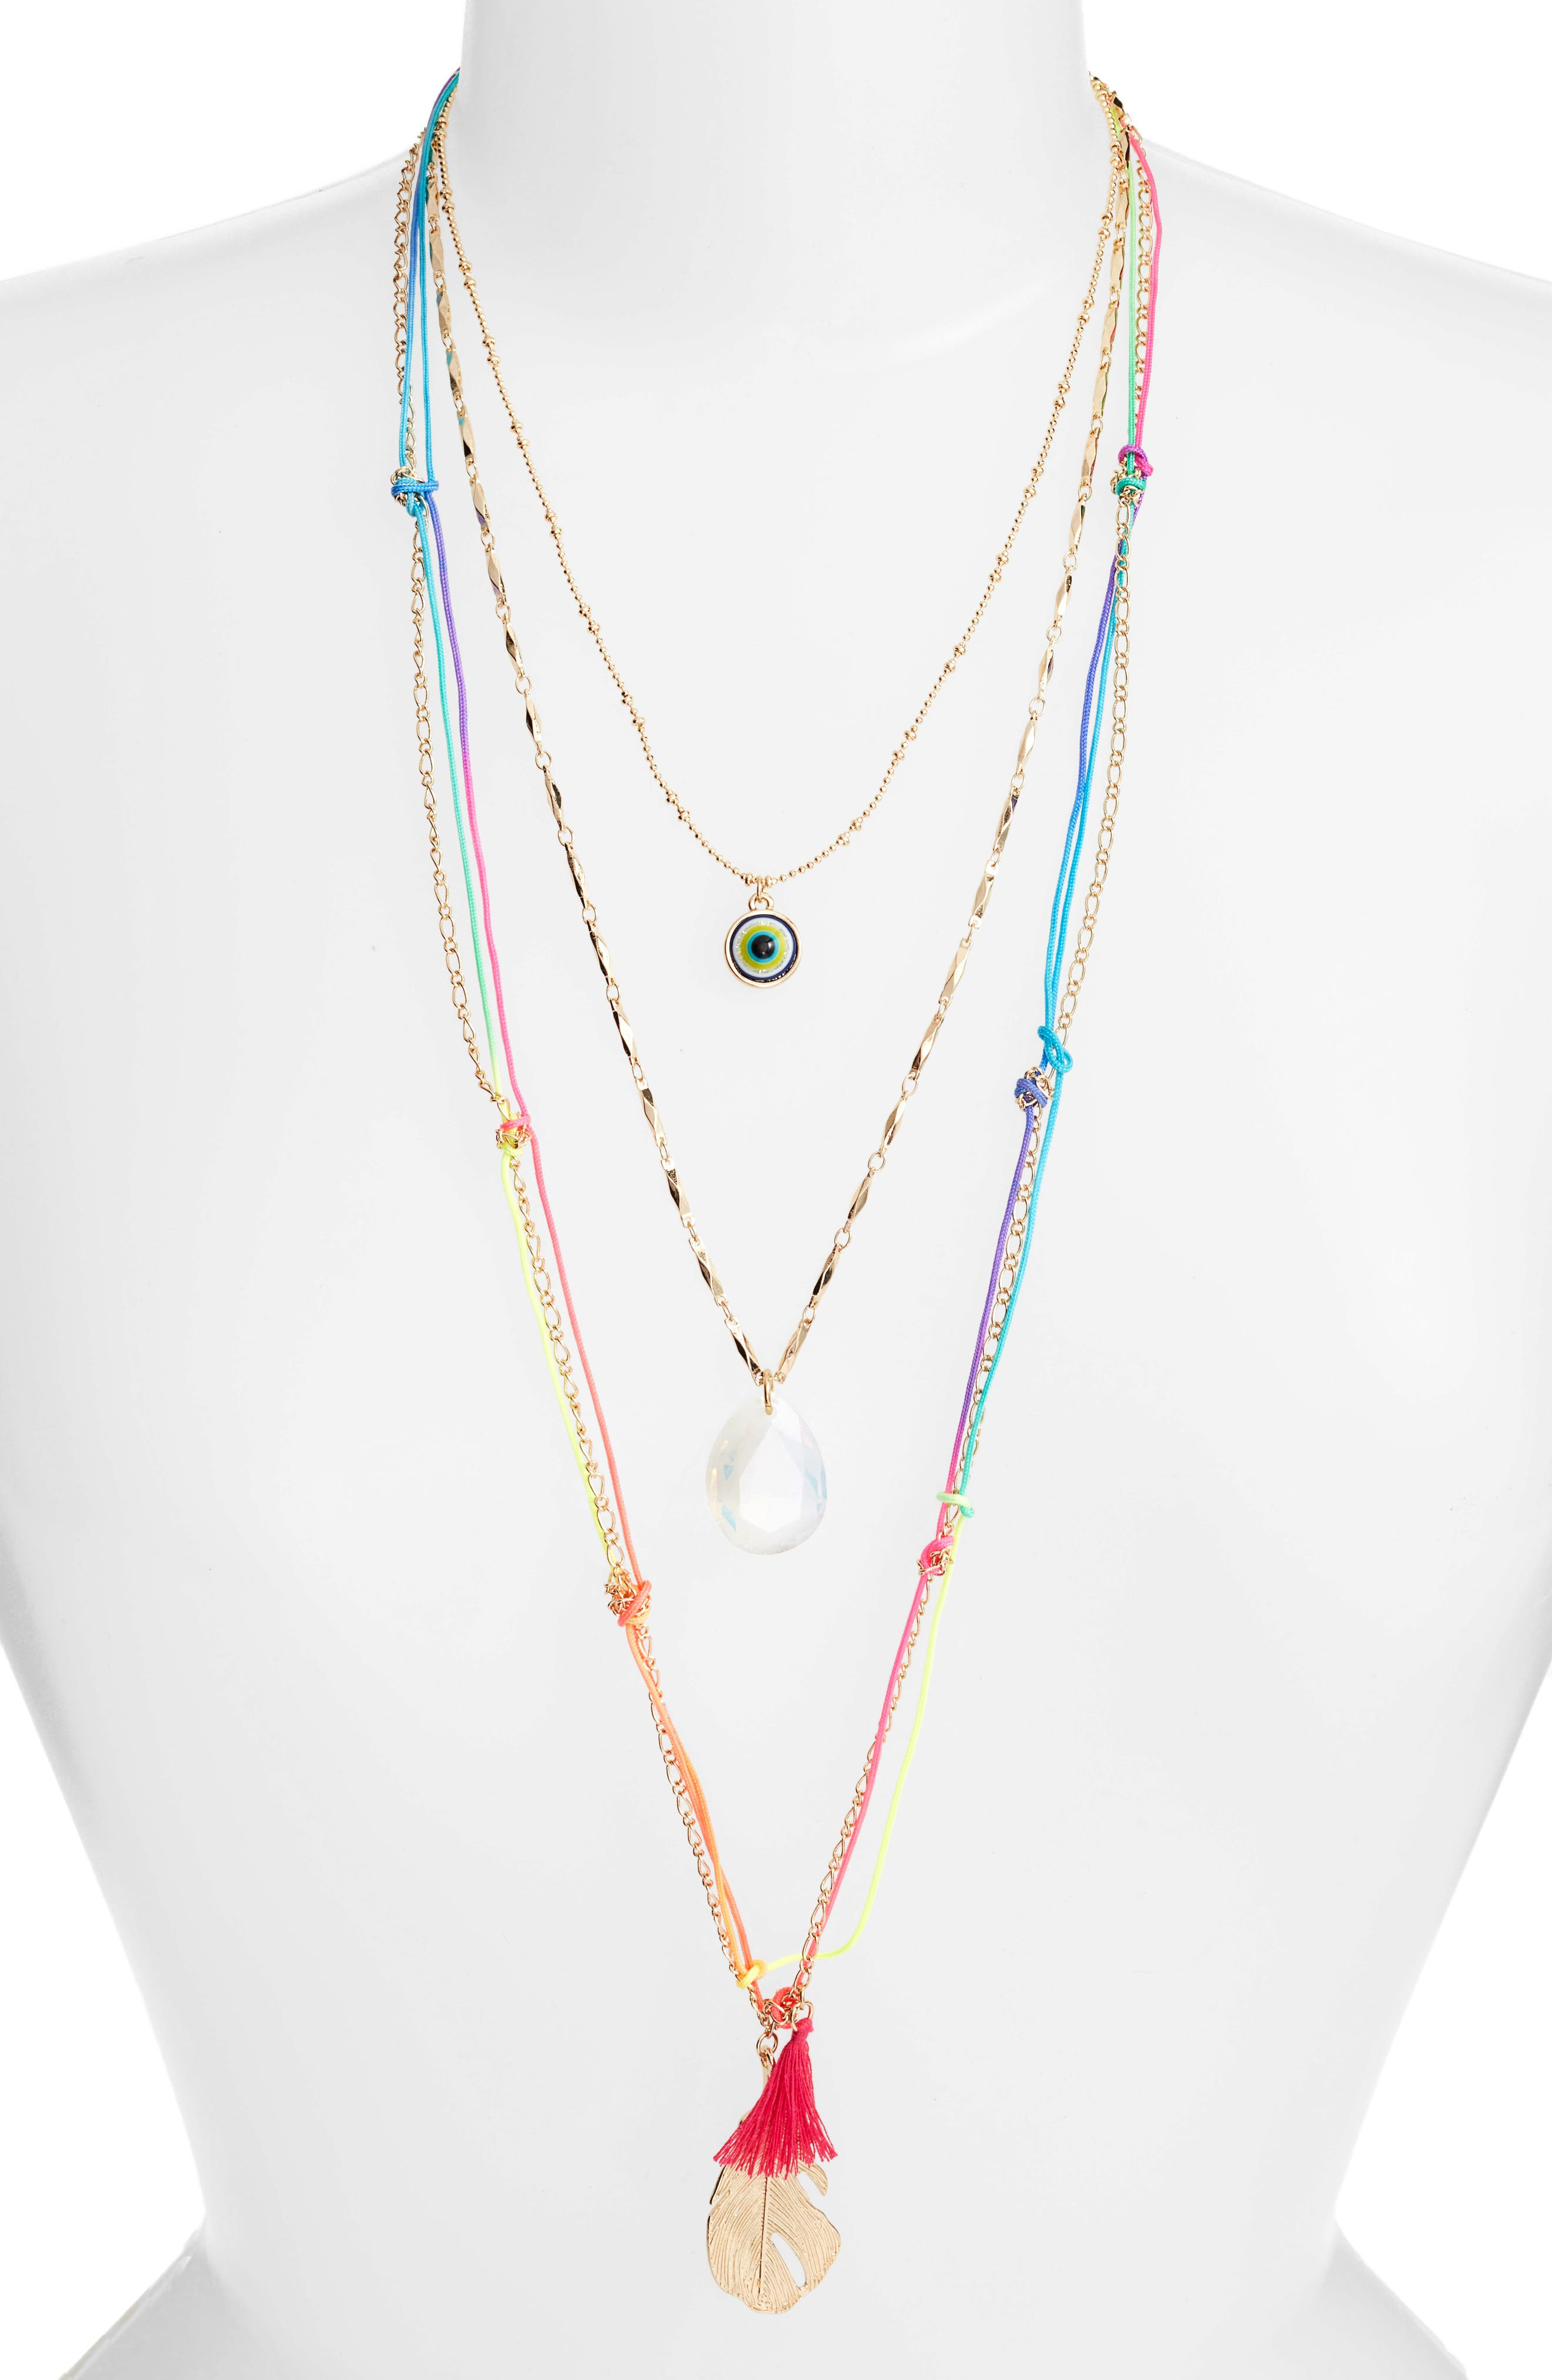 Charm Layered Necklace,                             Main thumbnail 1, color,                             710